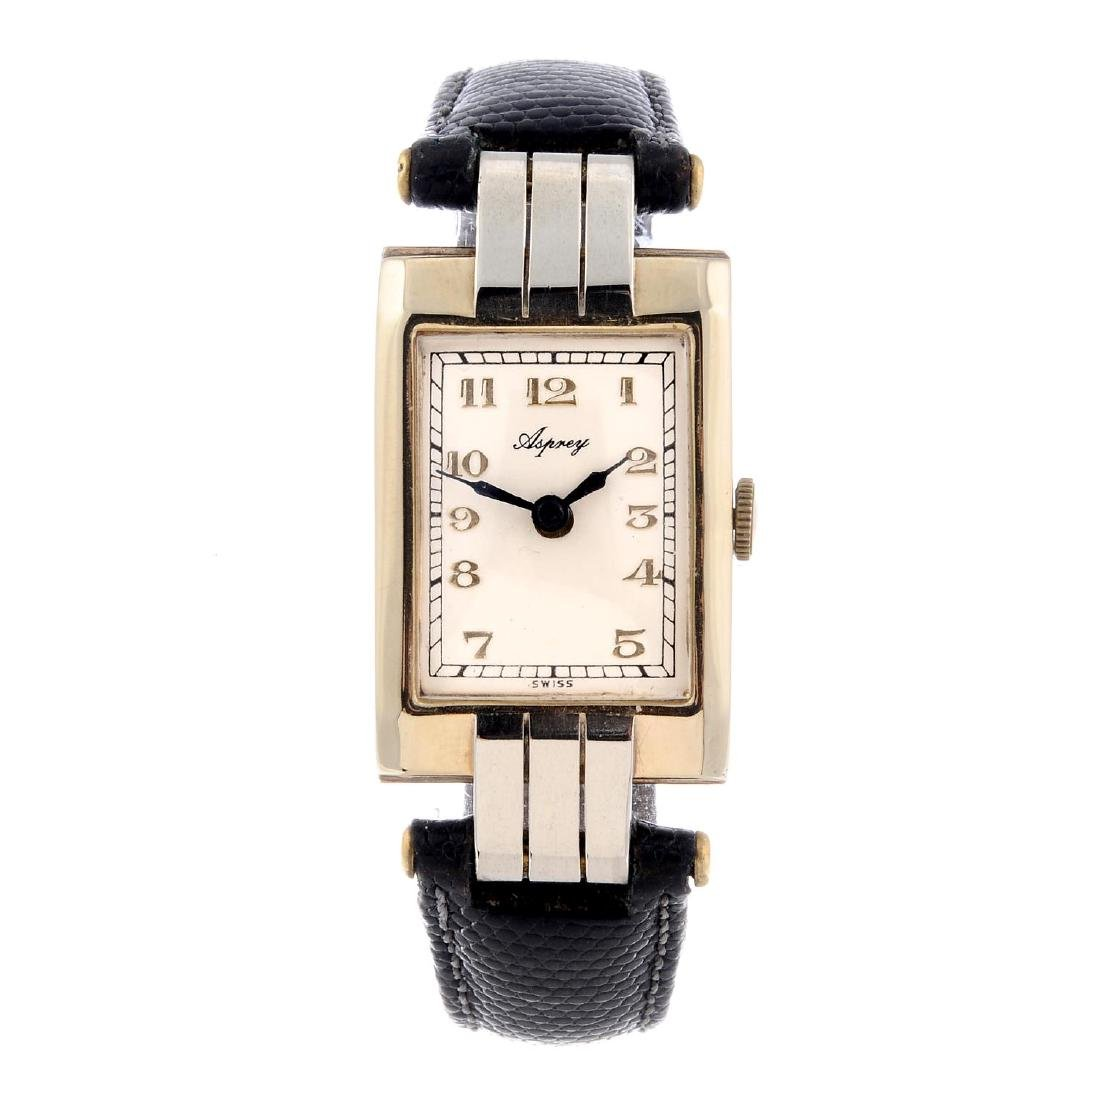 ASPREY - a gentleman's wrist watch. 9ct yellow gold